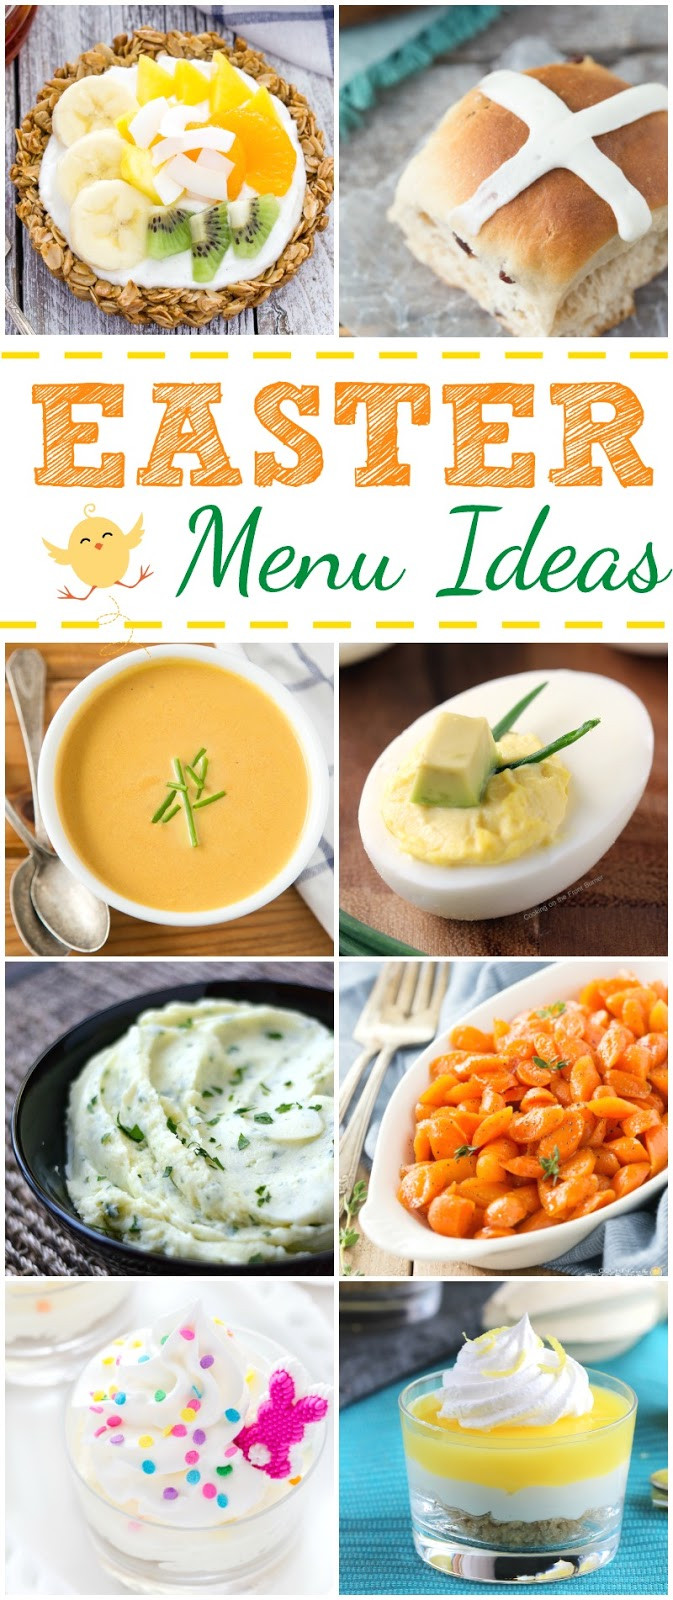 Ideas for Easter Dinner Menu 20 Of the Best Ideas for Easter Menu Ideas